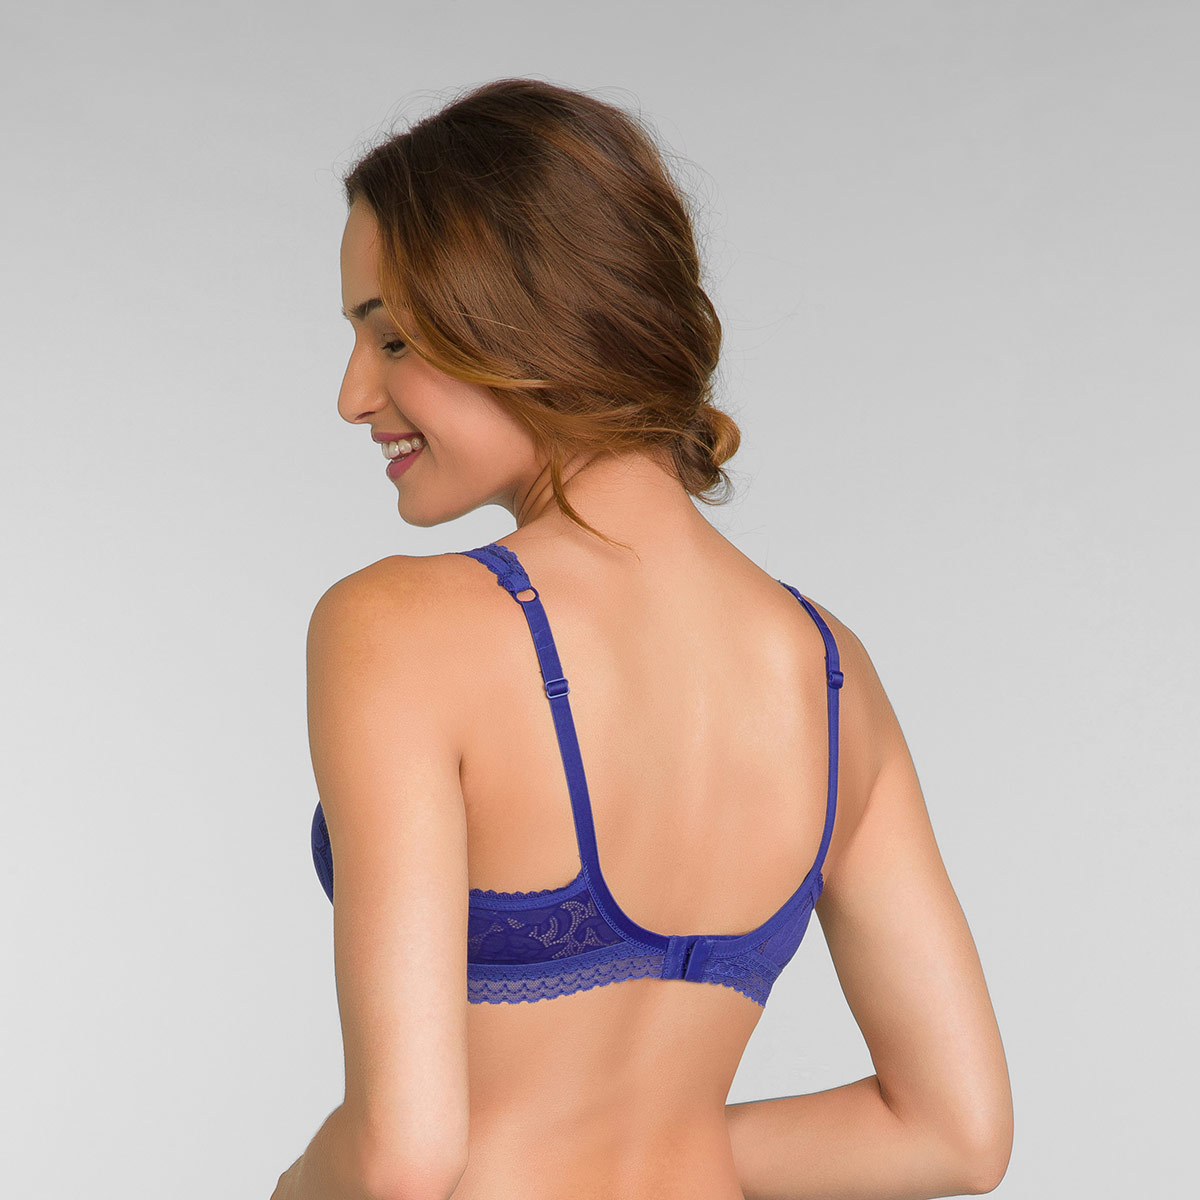 Reggiseno modellante con ferretto blu intenso Invisible Elegance, , PLAYTEX